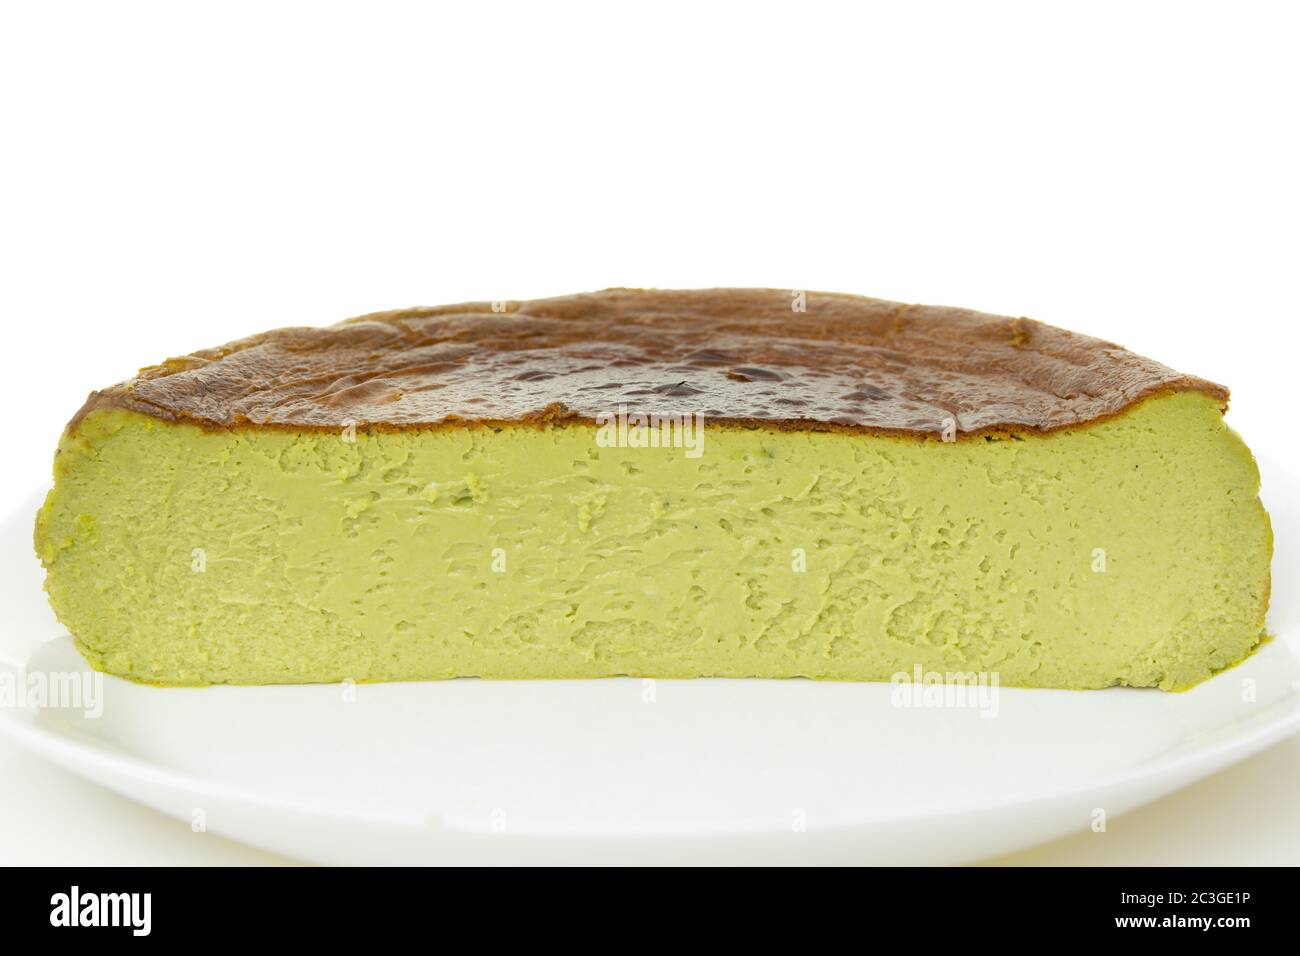 Half Cup Of Matcha Basque Burnt Cheesecake Isolated On White Background Stock Photo Alamy